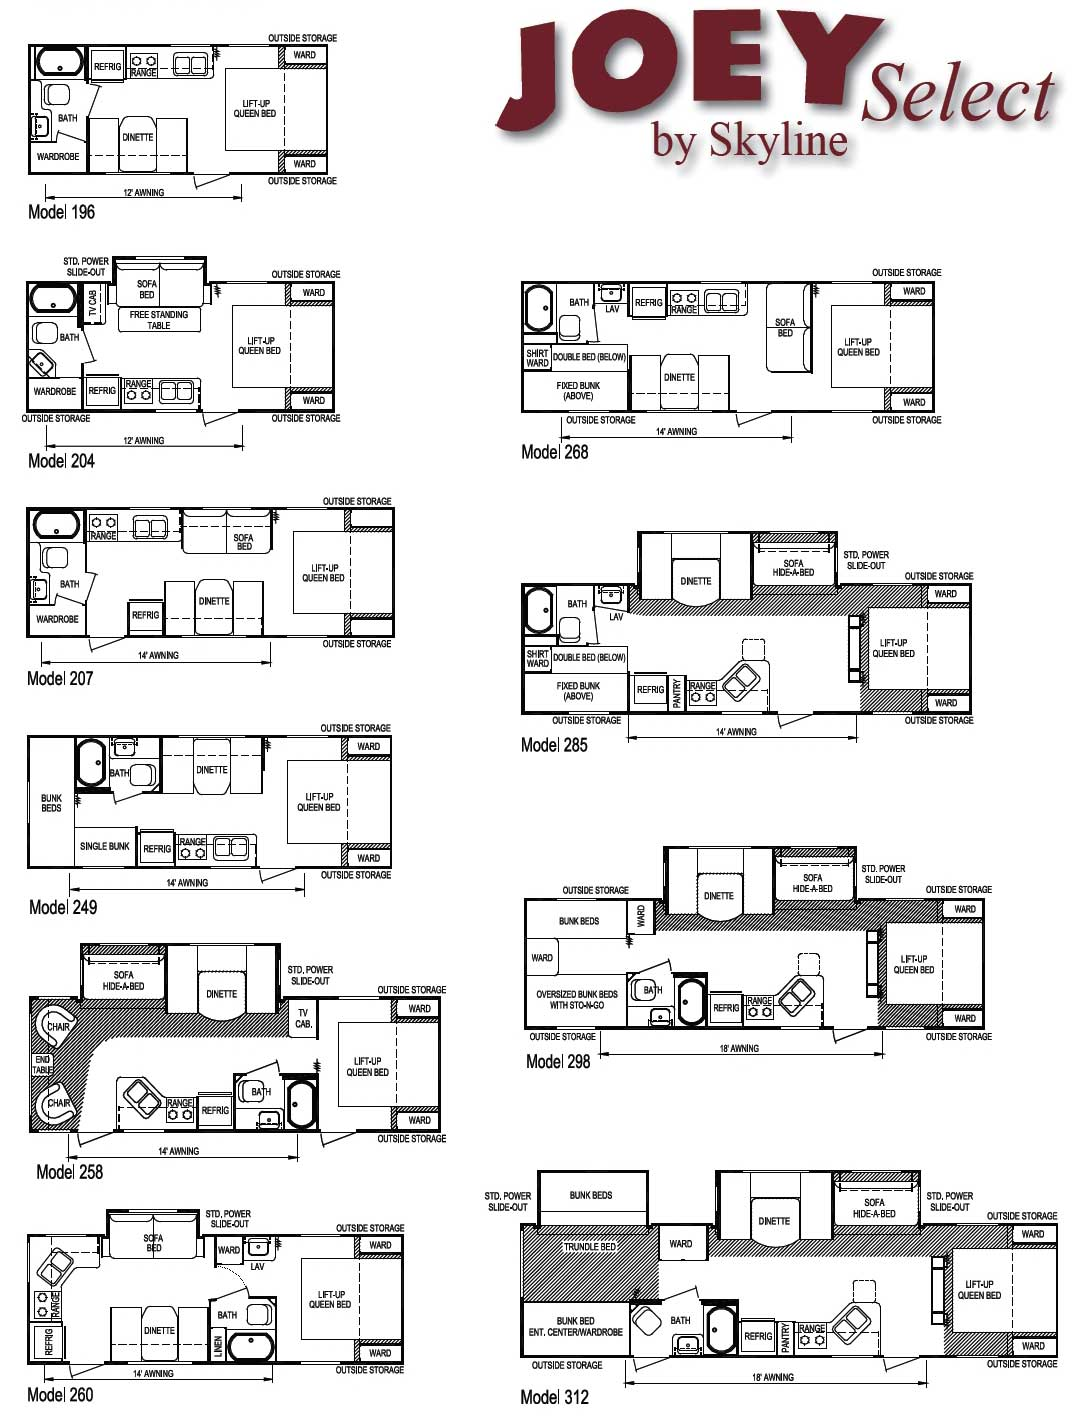 Skyline Joey travel trailer floorplans